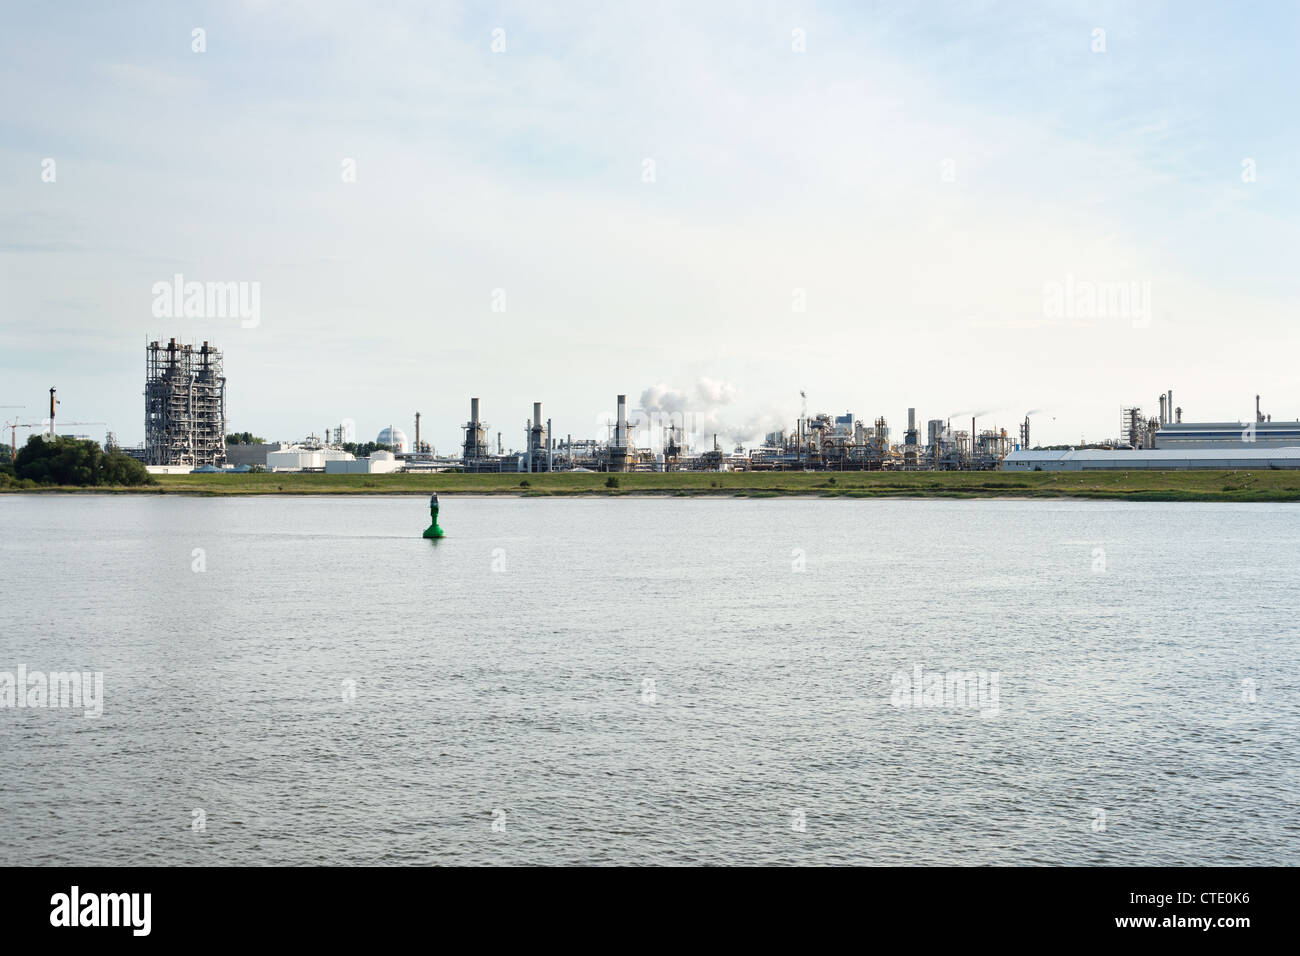 Chemical industries near river in Stade, Germany - Stock Image